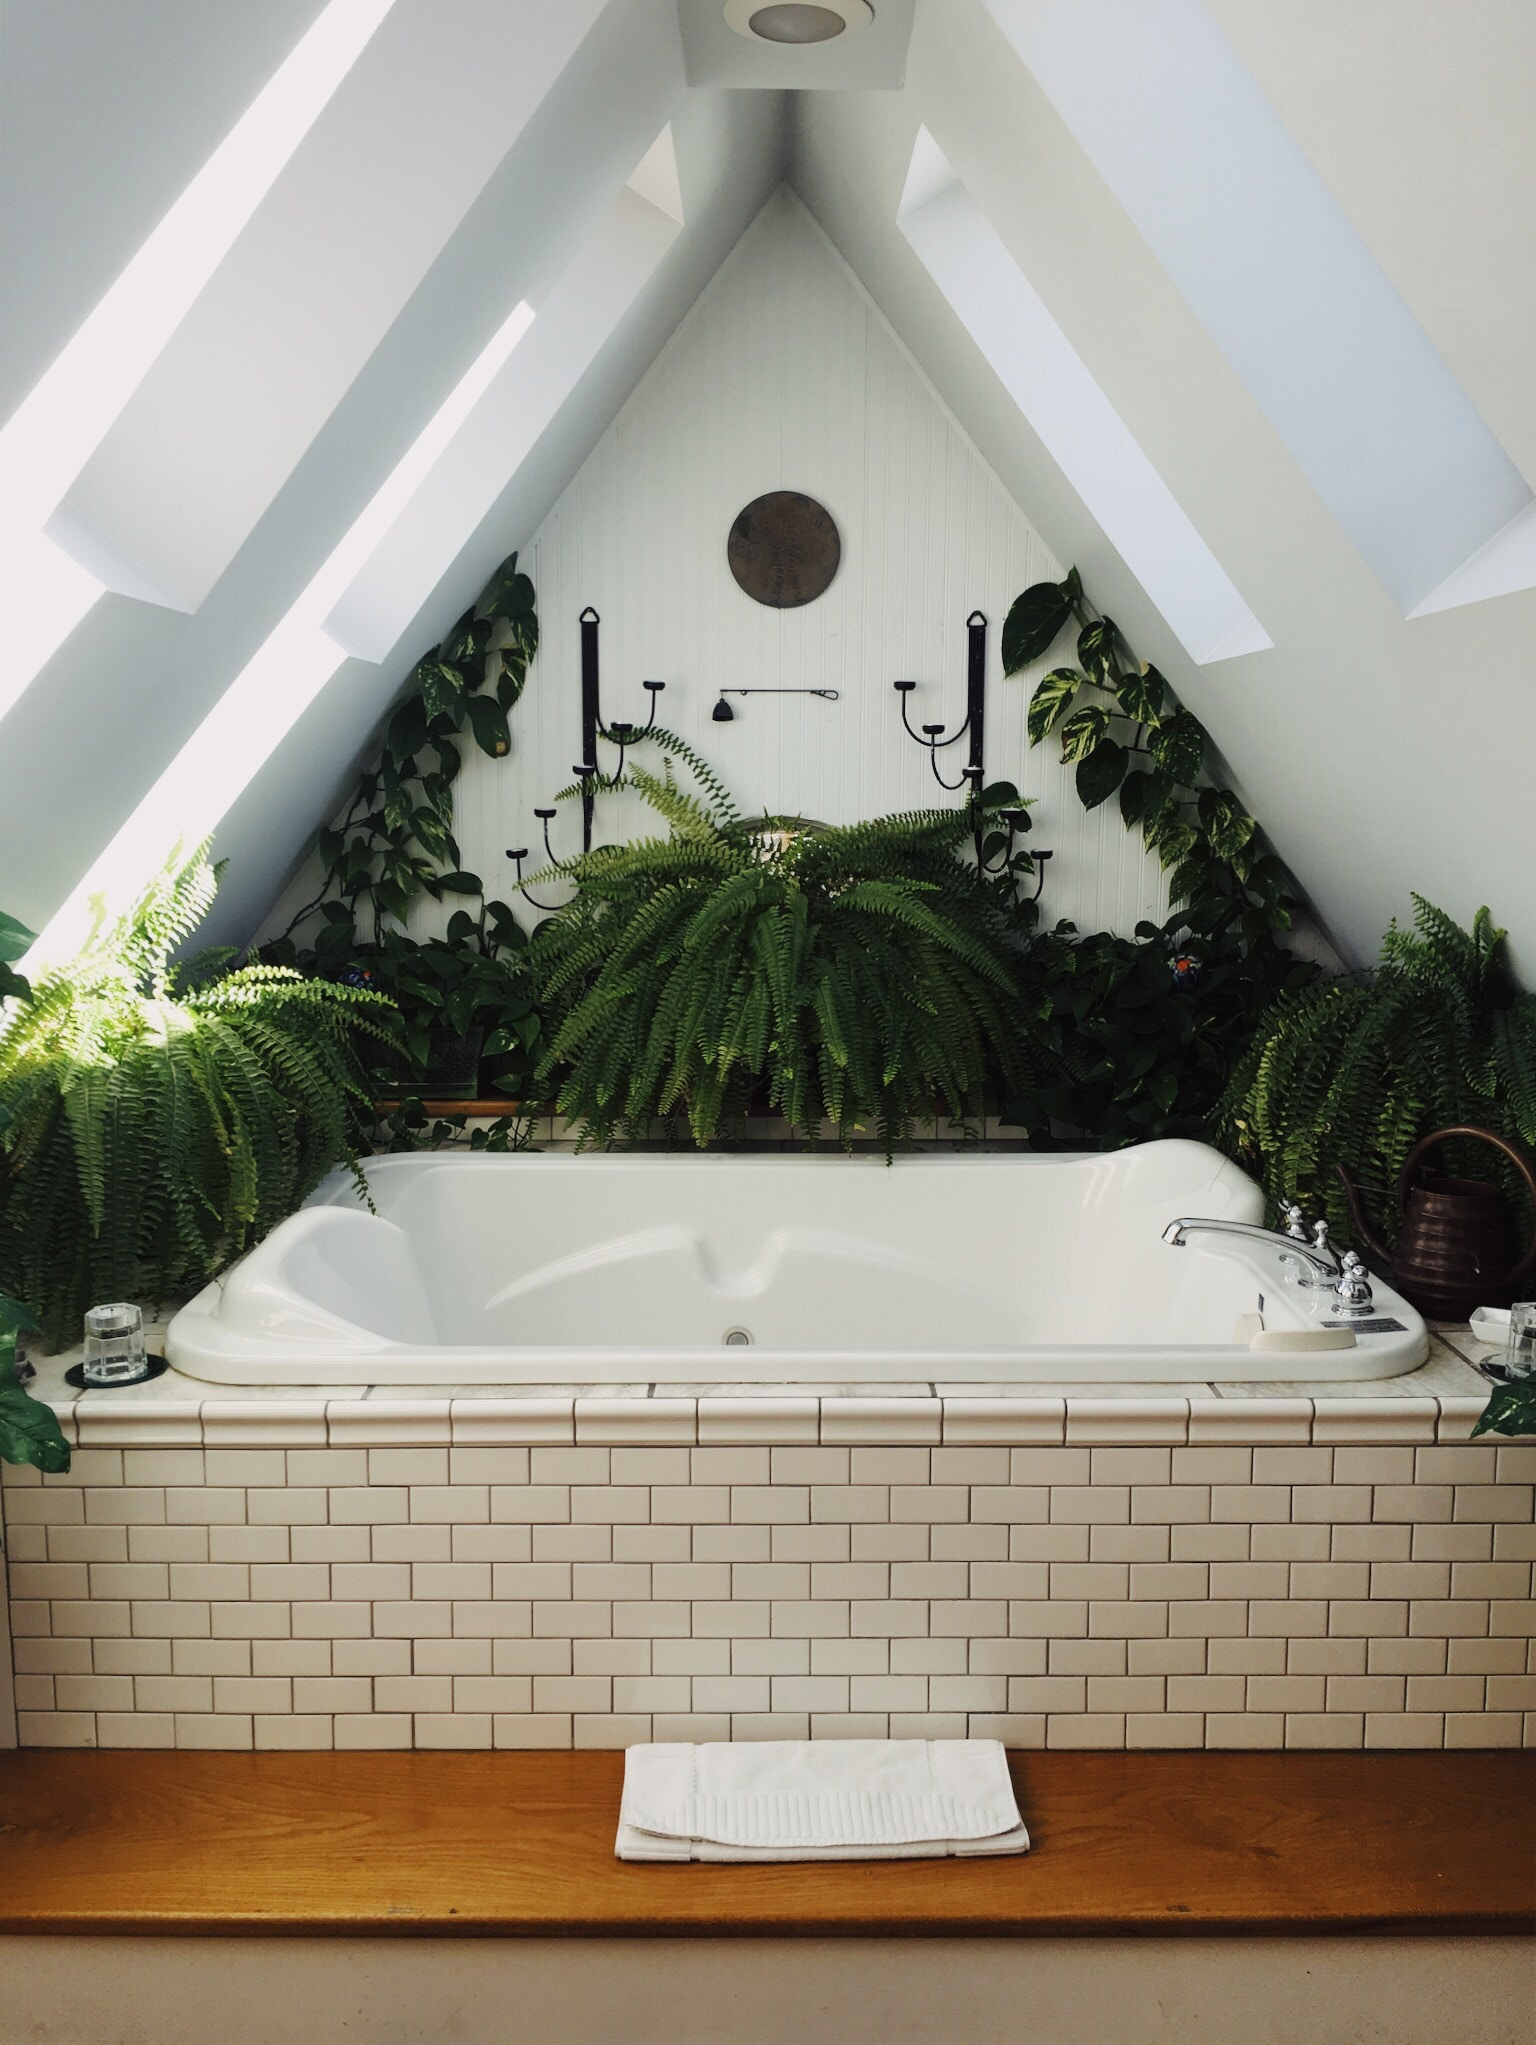 Soak Badkamer What Plants Can Survive In A Bathroom Doors More